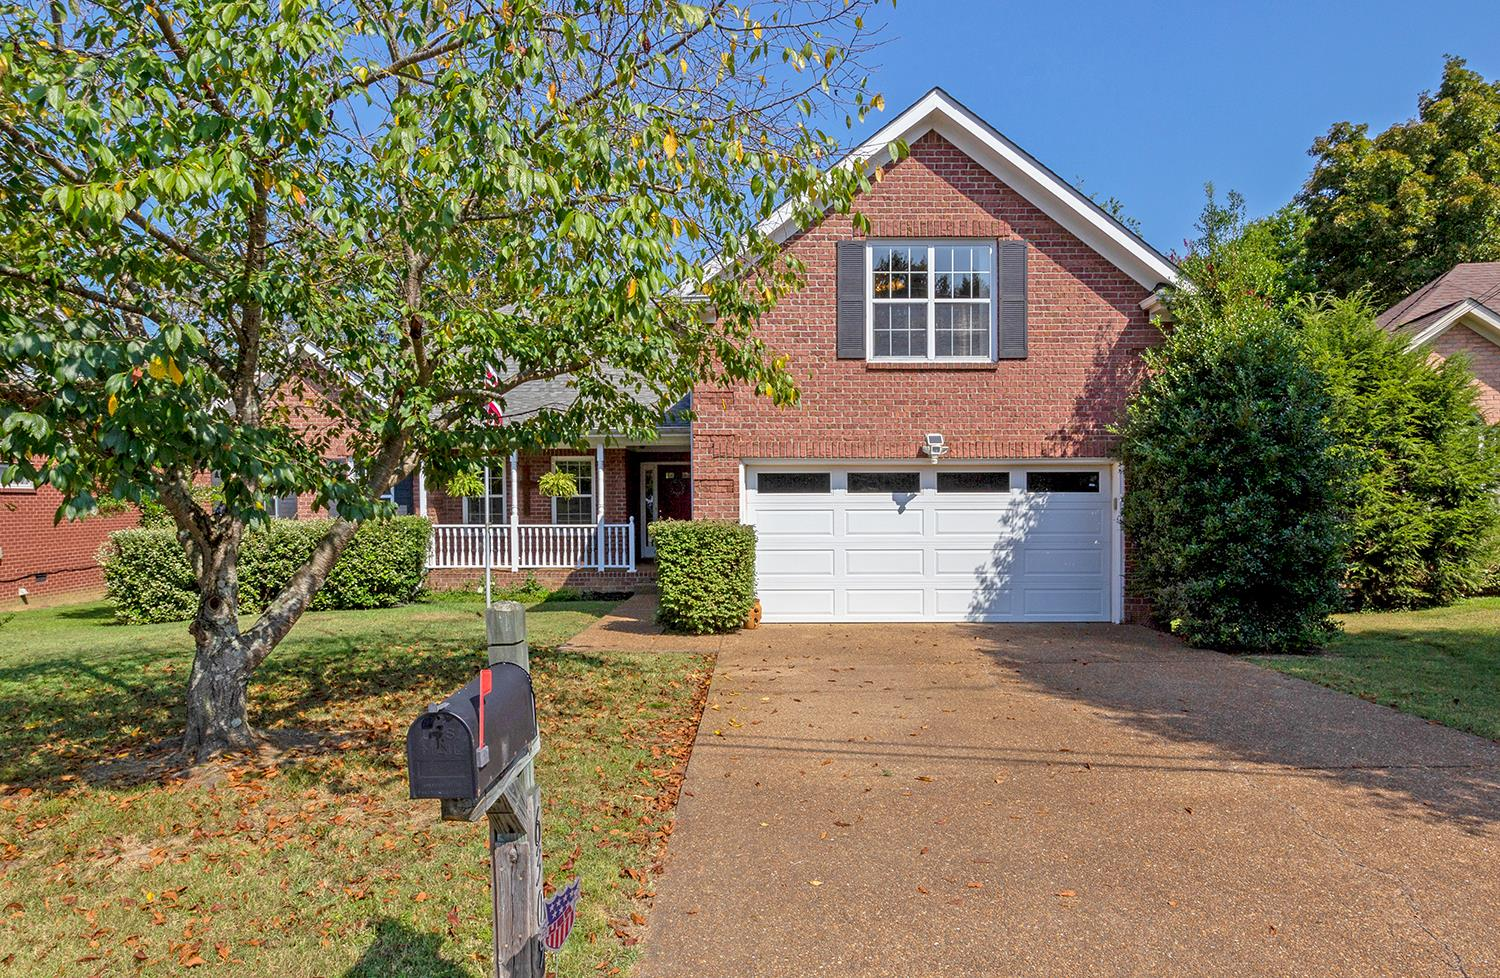 6309 Paddington Way, Nashville-Antioch in Davidson County County, TN 37013 Home for Sale